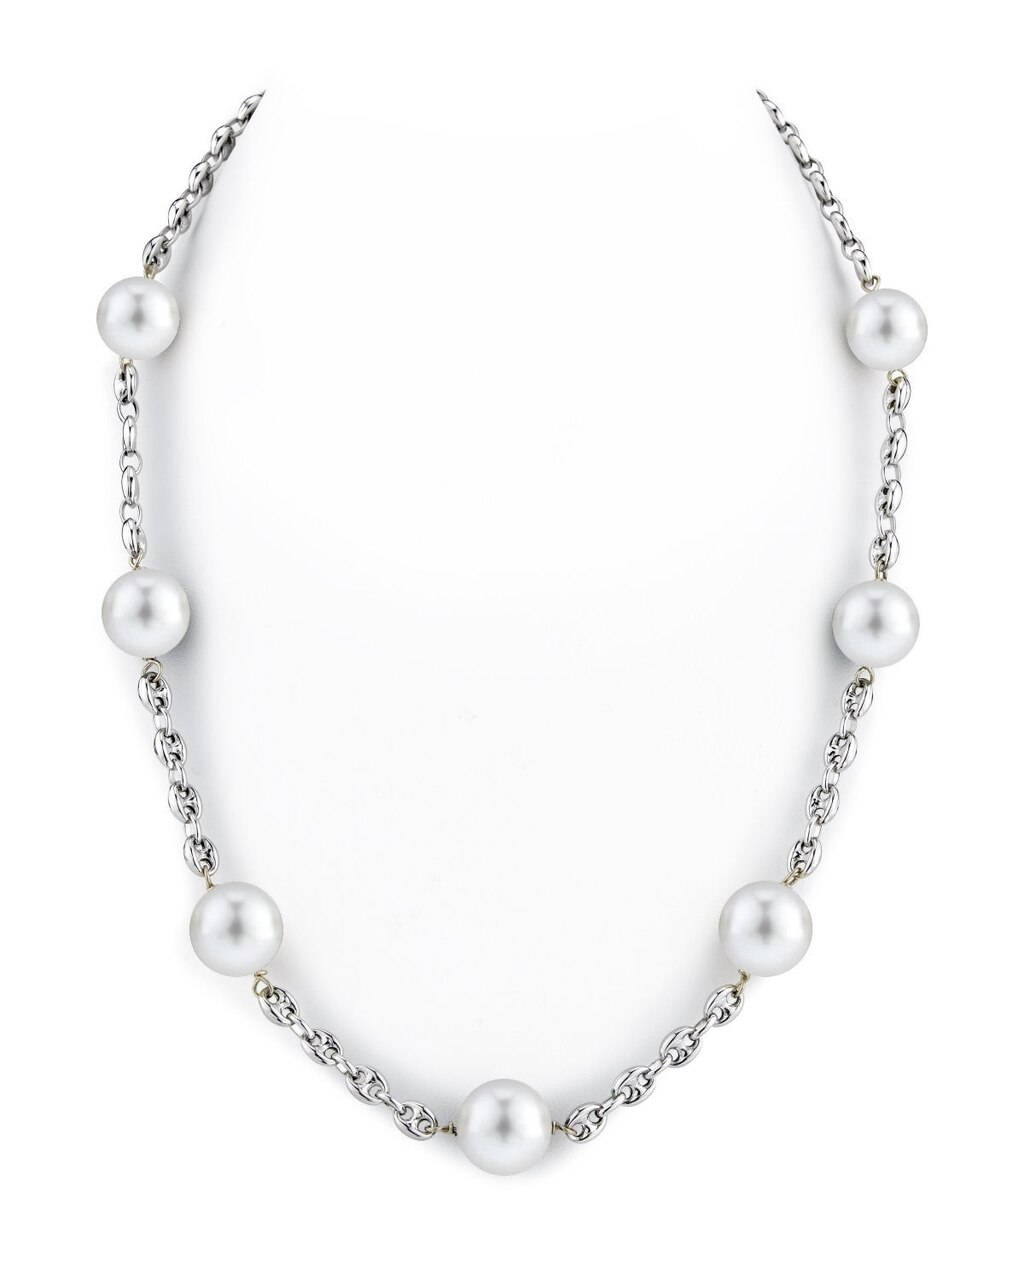 This exquisite necklace features 10.0-11.0mm White South Sea pearls, handpicked for their radiant luster